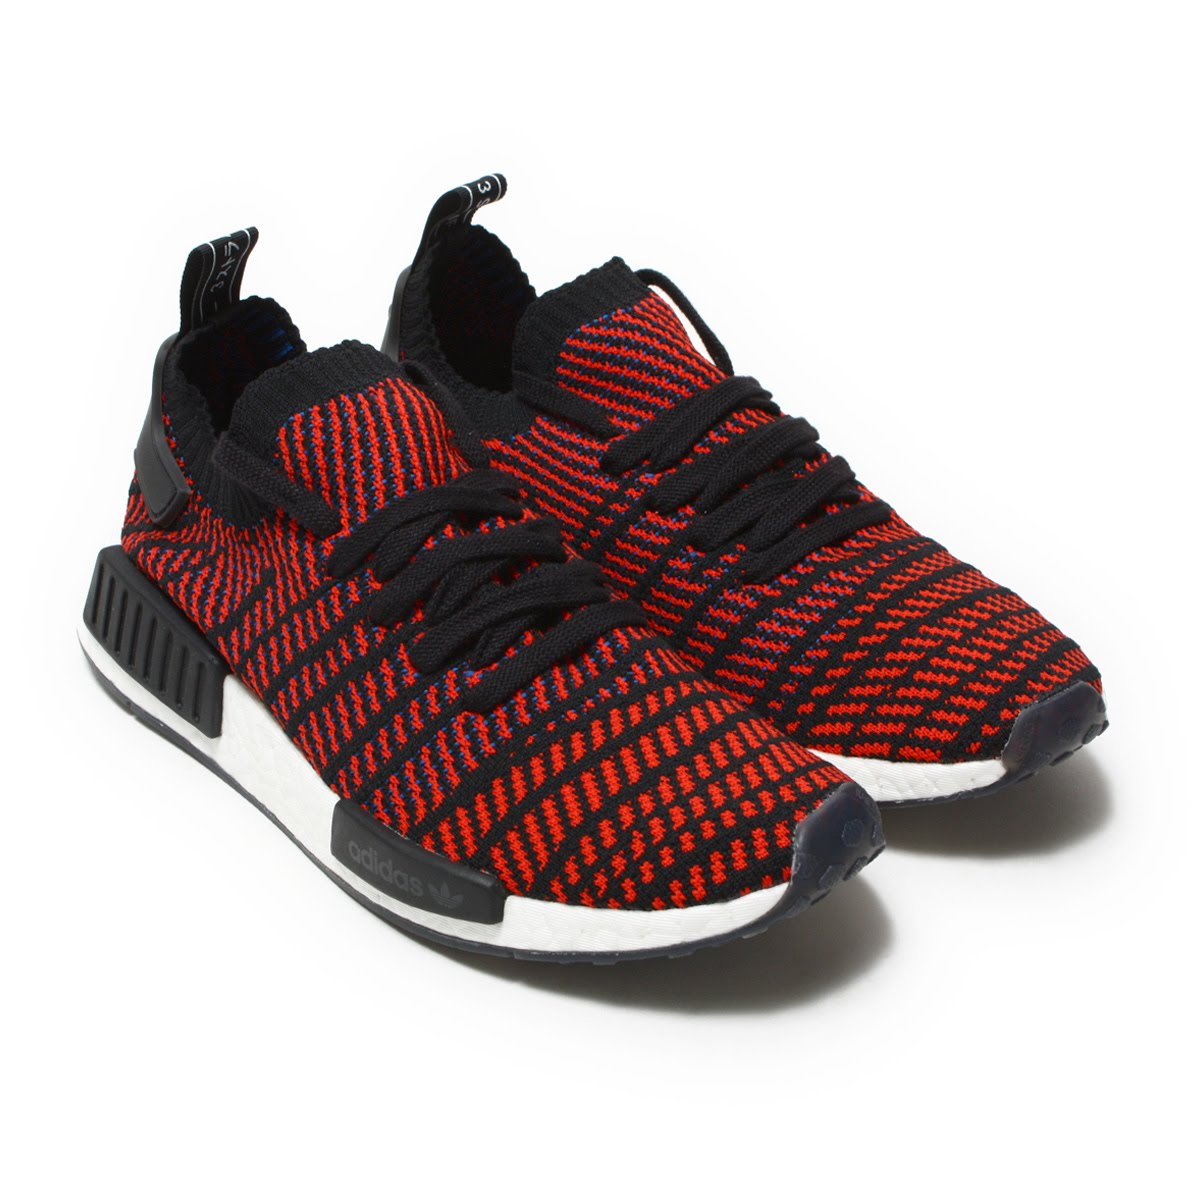 adidas Originals NMD R1 STLT PK(アディダス オリジナルス エヌエムディー R1 STLT PK) Core Black/Red Solid/Satellite18SP-I